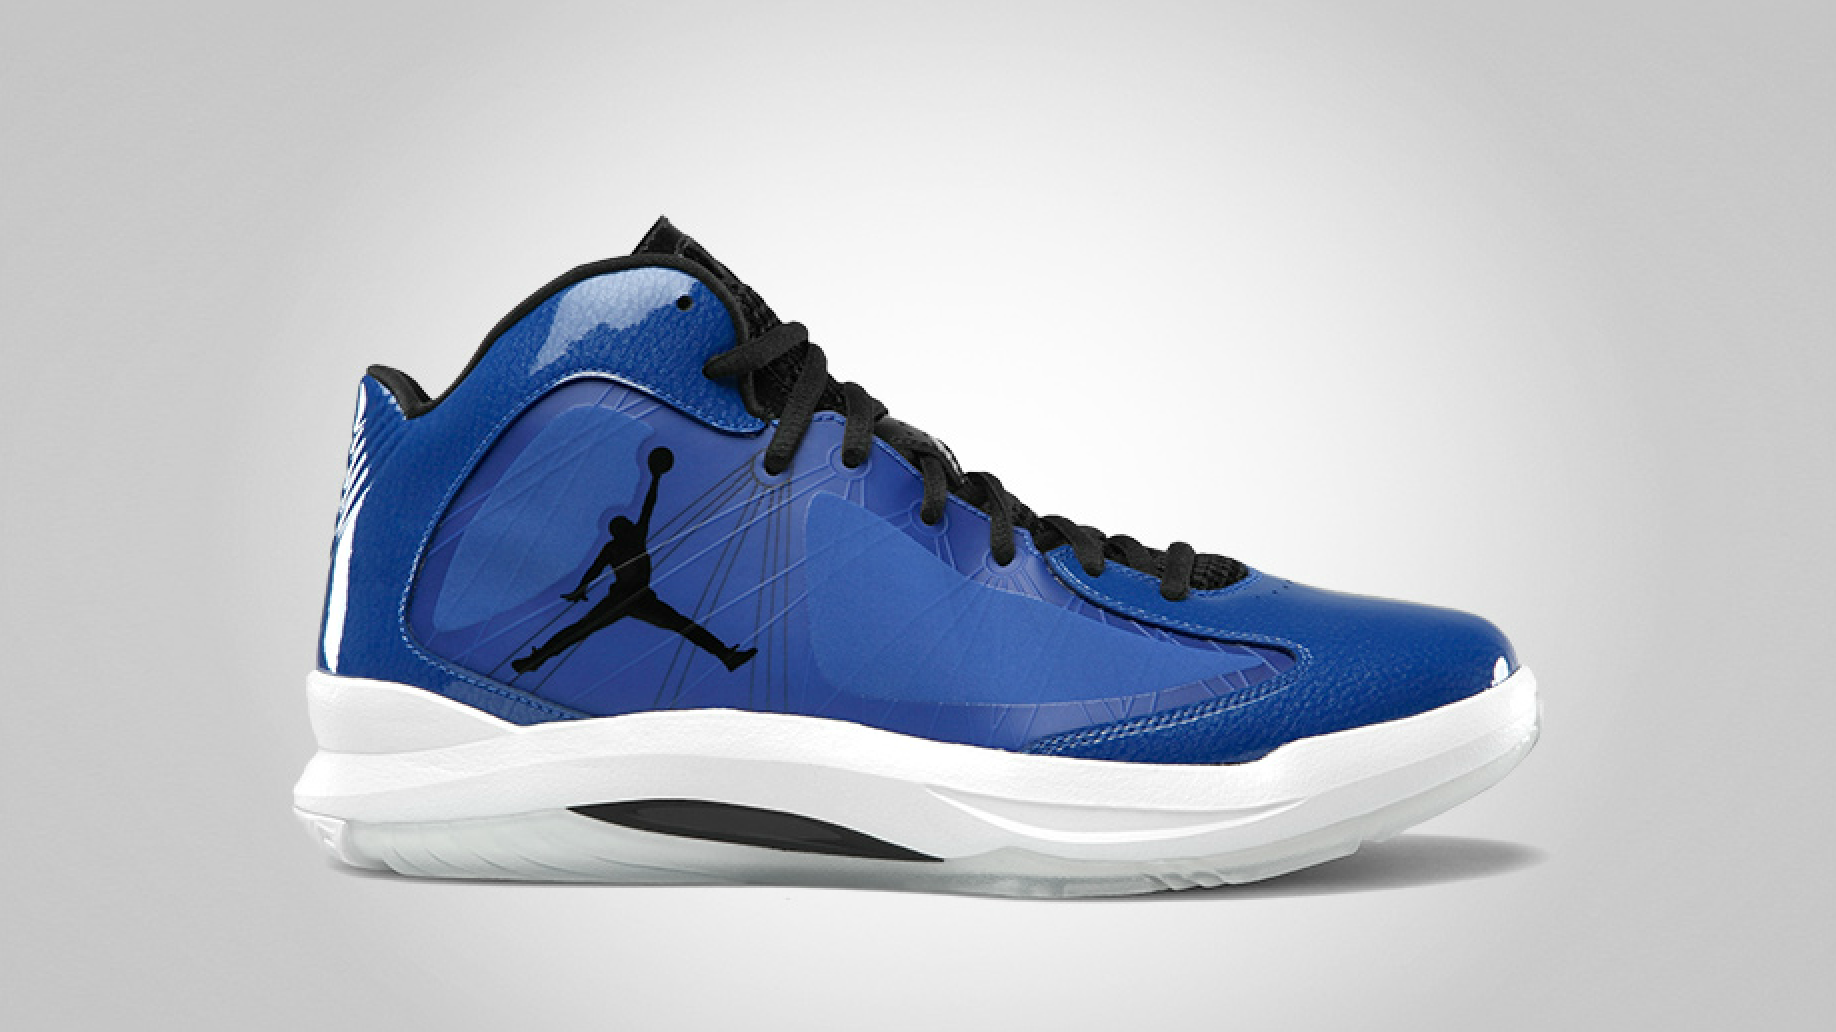 Jordan Aero Flight 'Game Royal/Black-White'